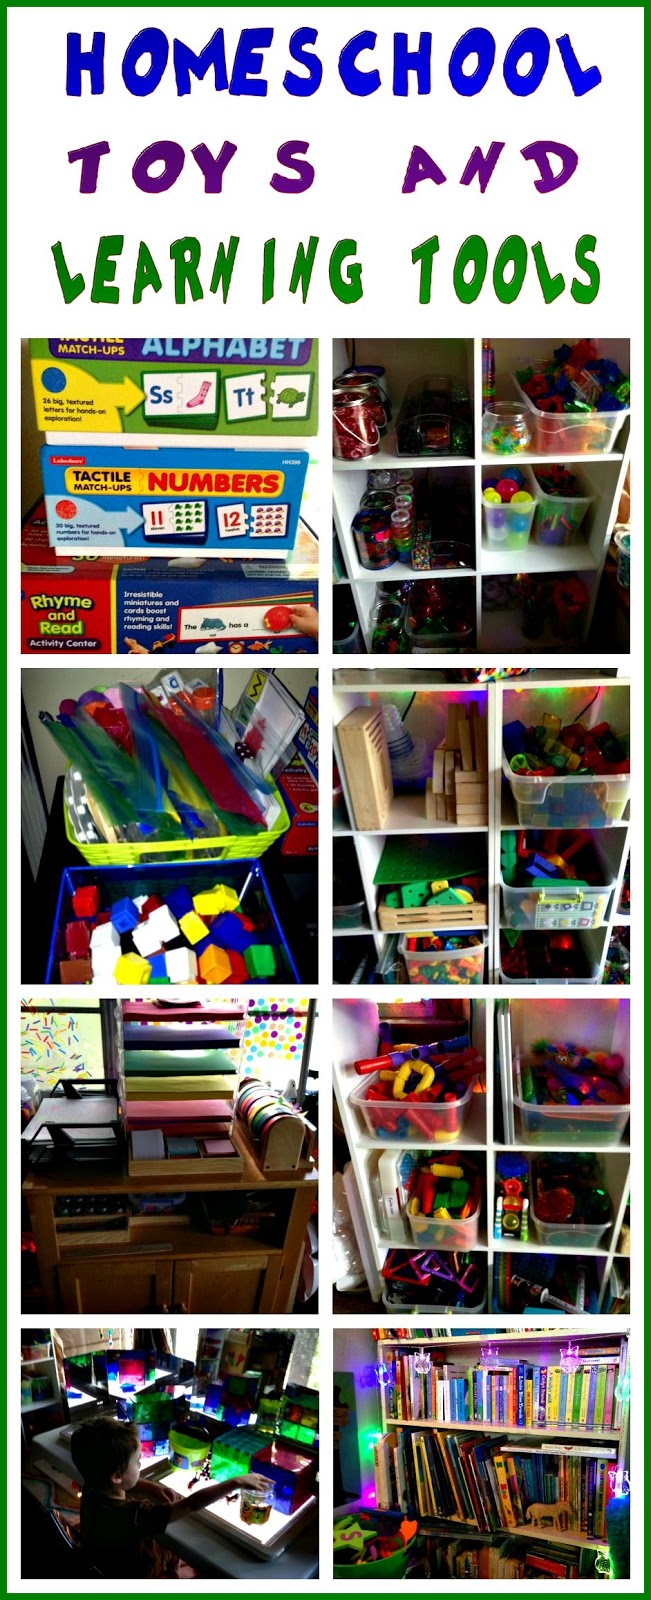 Learn Tools As You Put Them To Use In Projects: Learning Toys And Tools